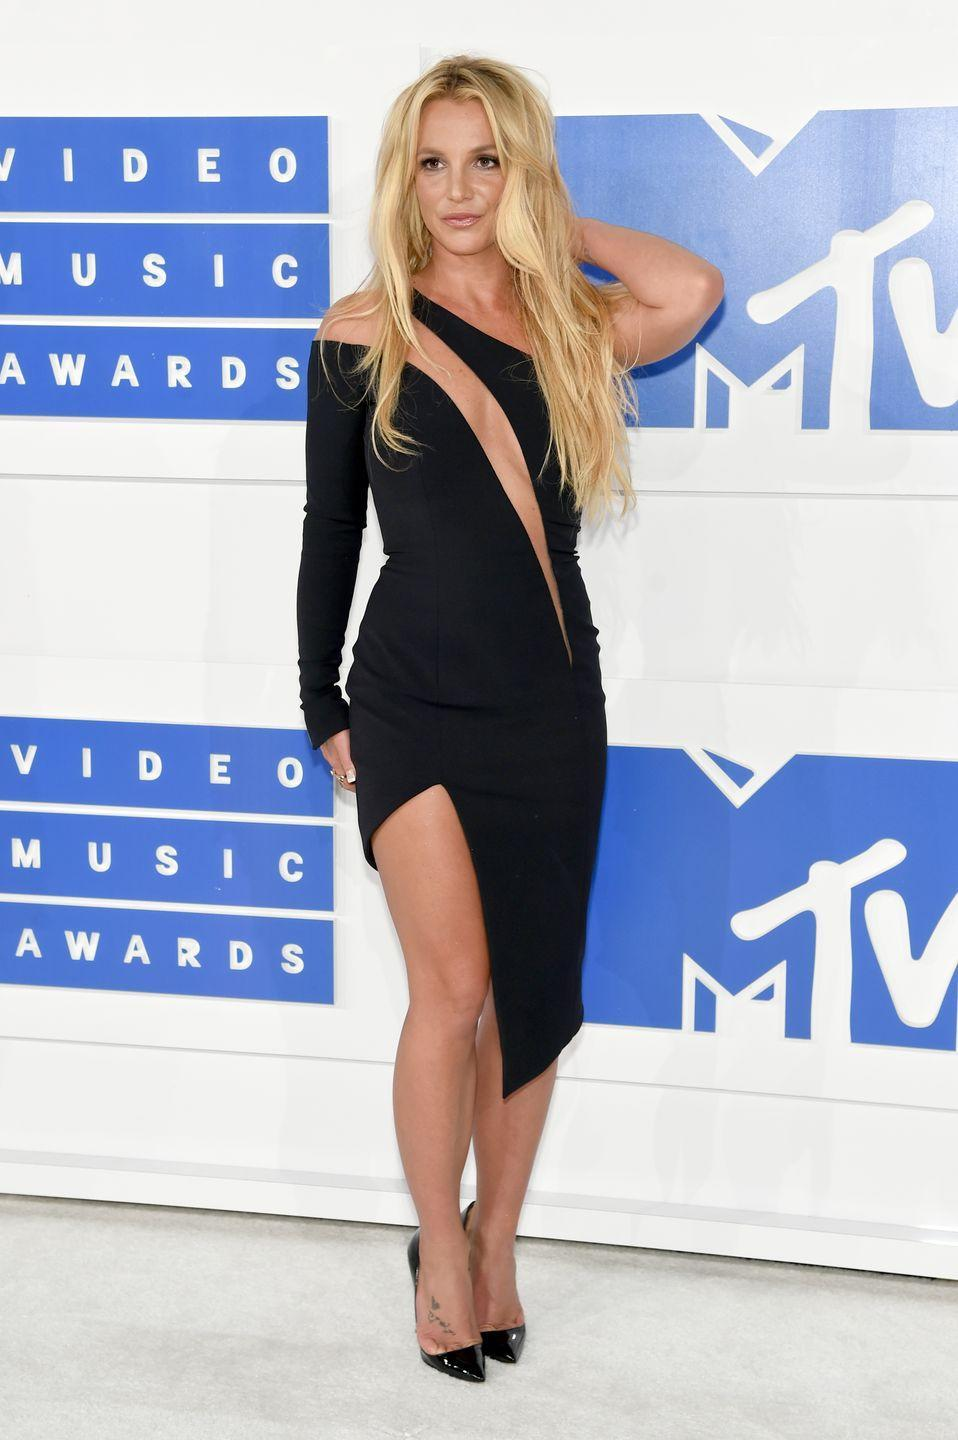 <p>The superstar rocks a little black dress for the 2016 MTV Video Music Awards in New York on August 28, 2016.</p>